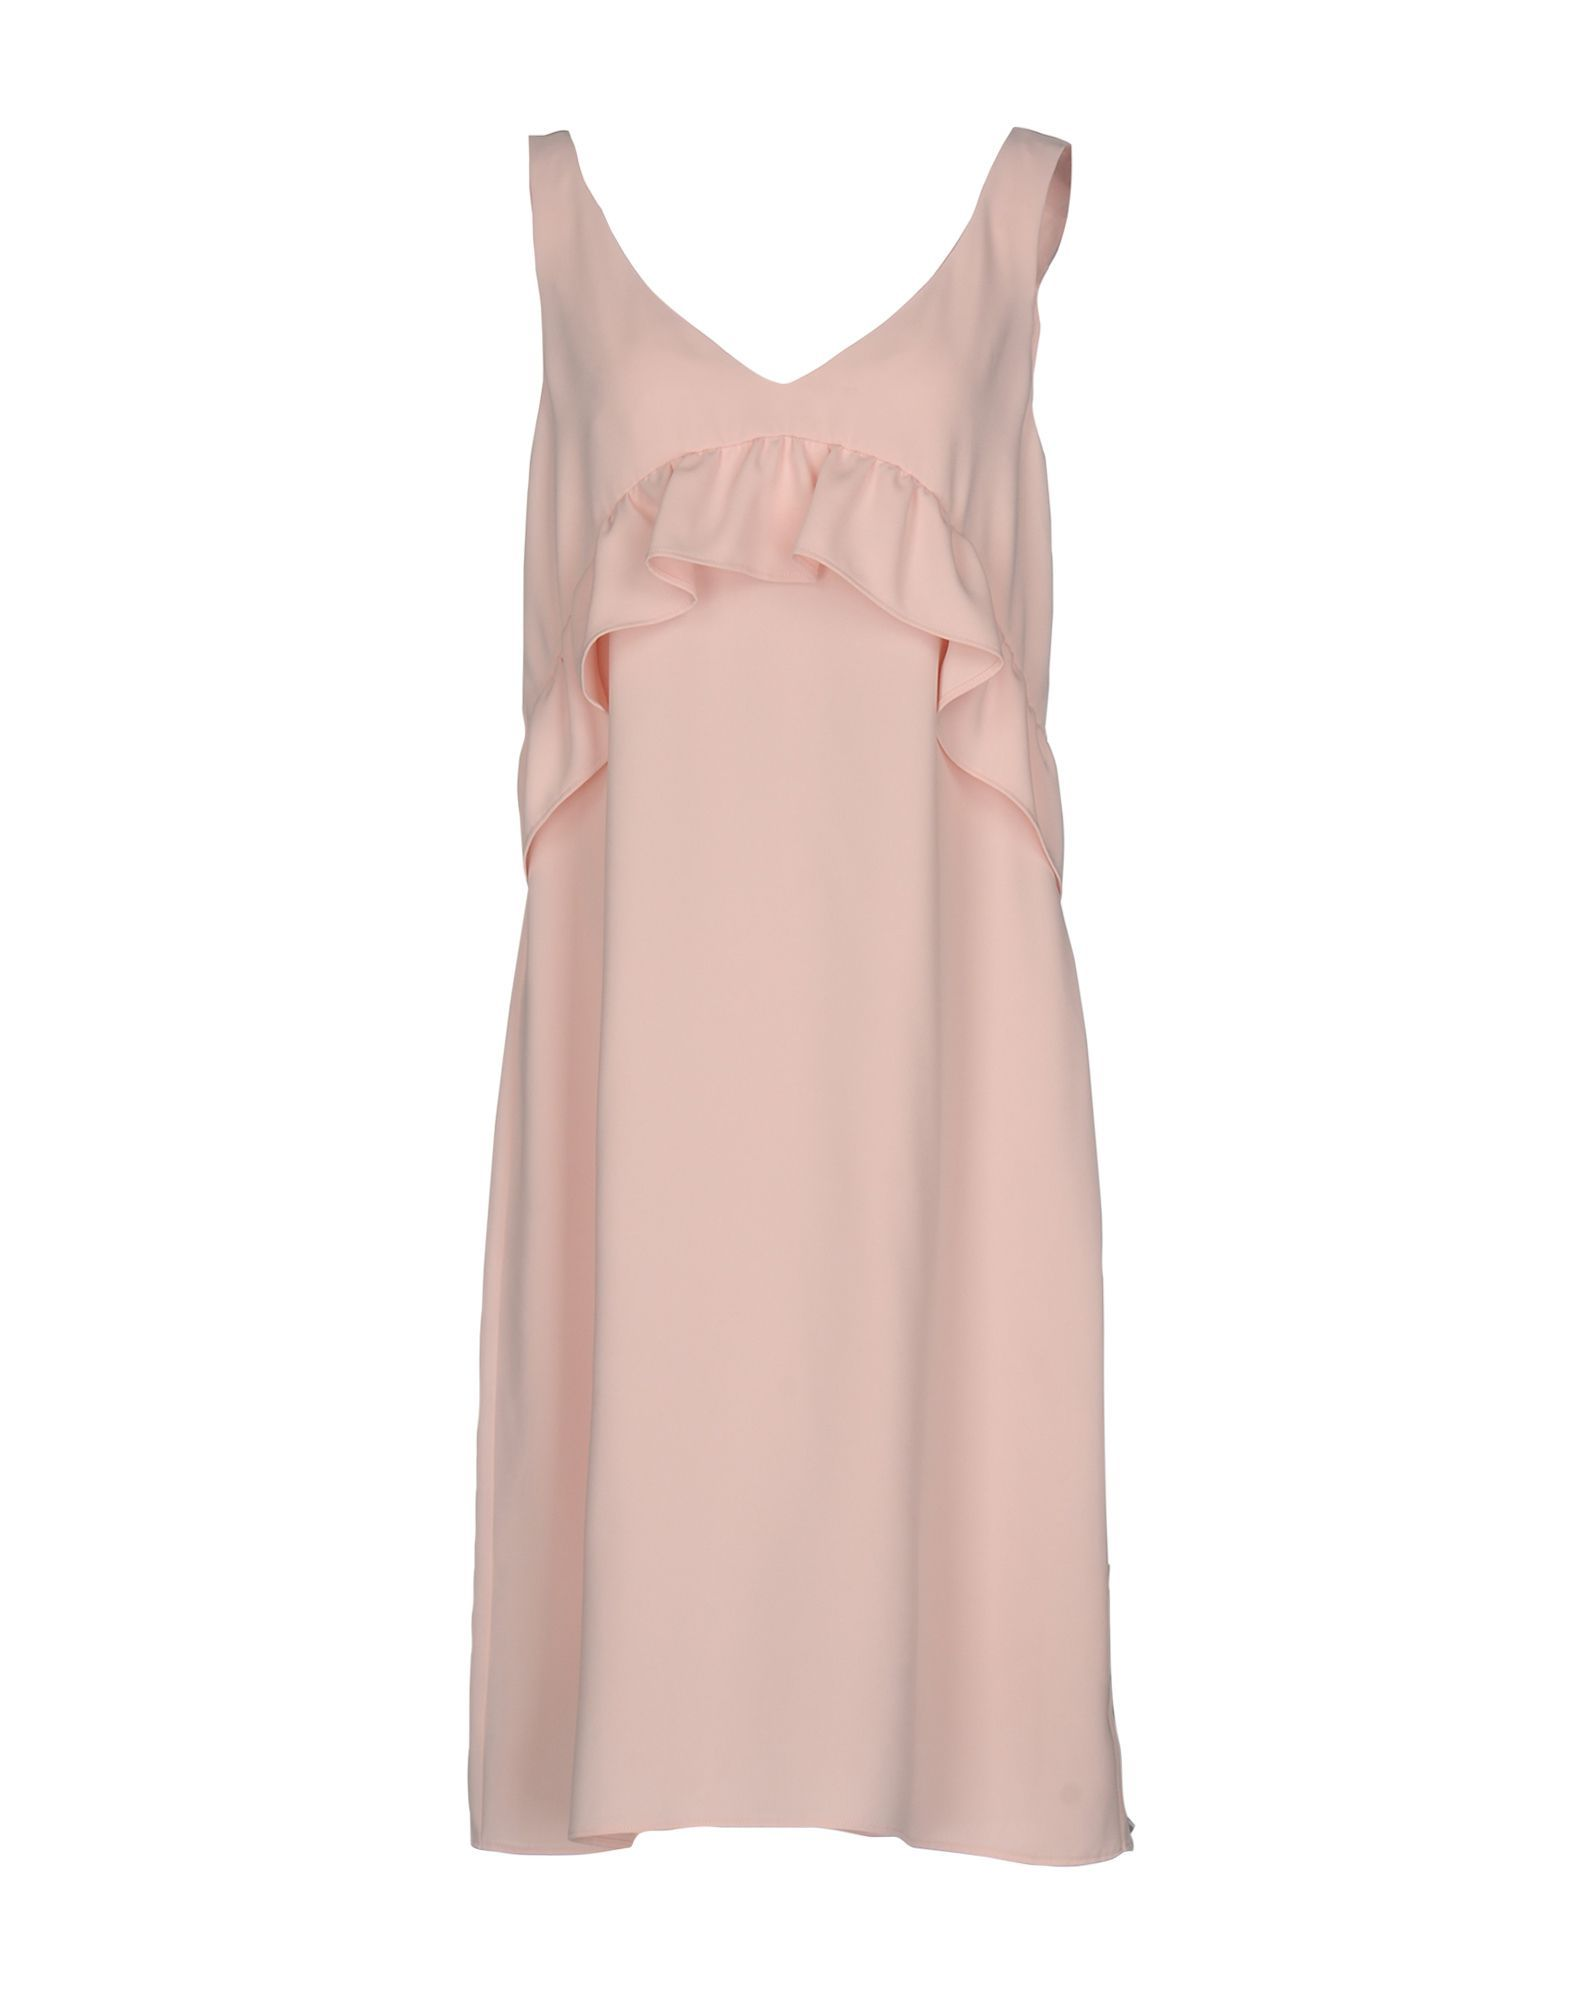 P.A.R.O.S.H. Pink Crepe Ruffle Dress